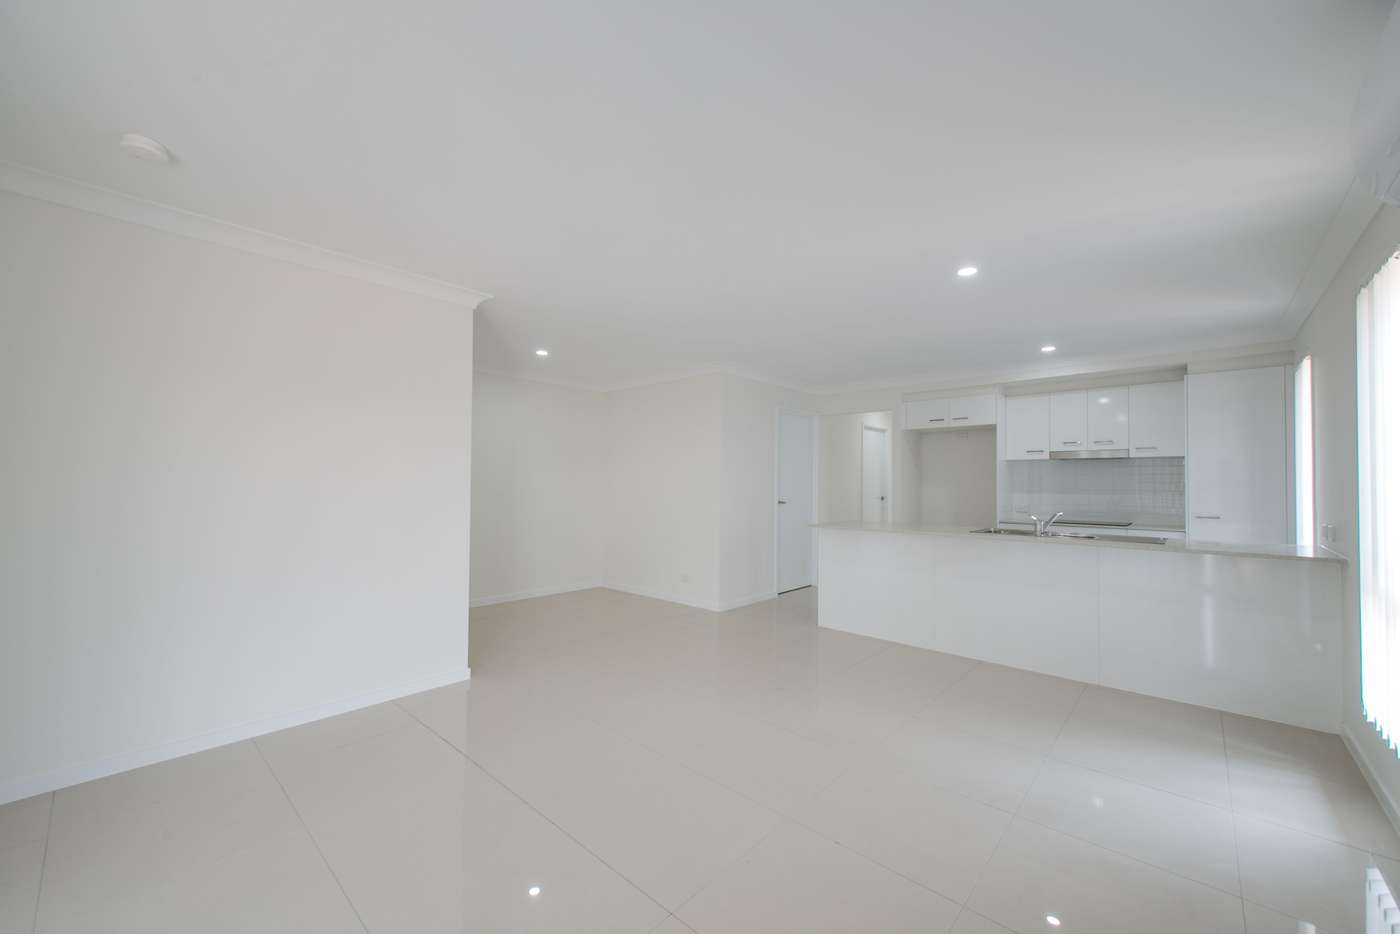 Main view of Homely house listing, 1/4 Larter Street, Brassall QLD 4305